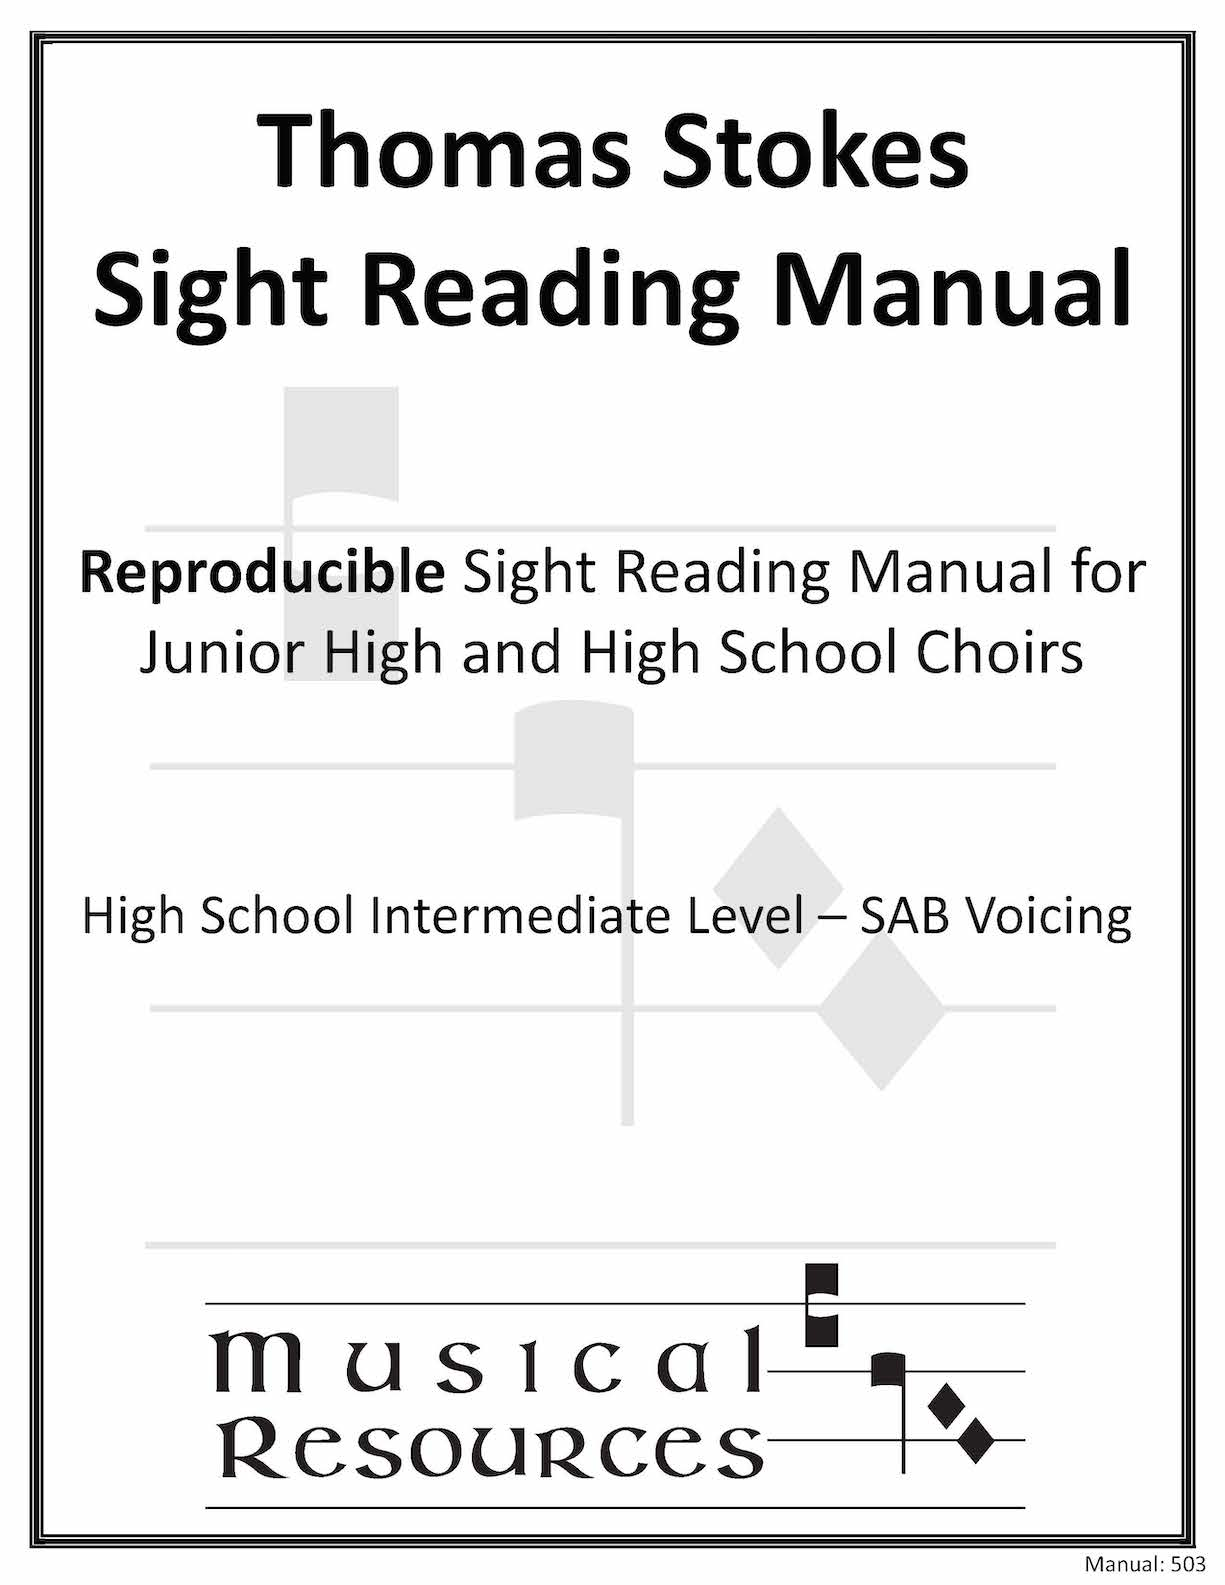 Picture of (Digital) Thomas Stokes Sightreading Manual #503 - SAB High School Intermediate